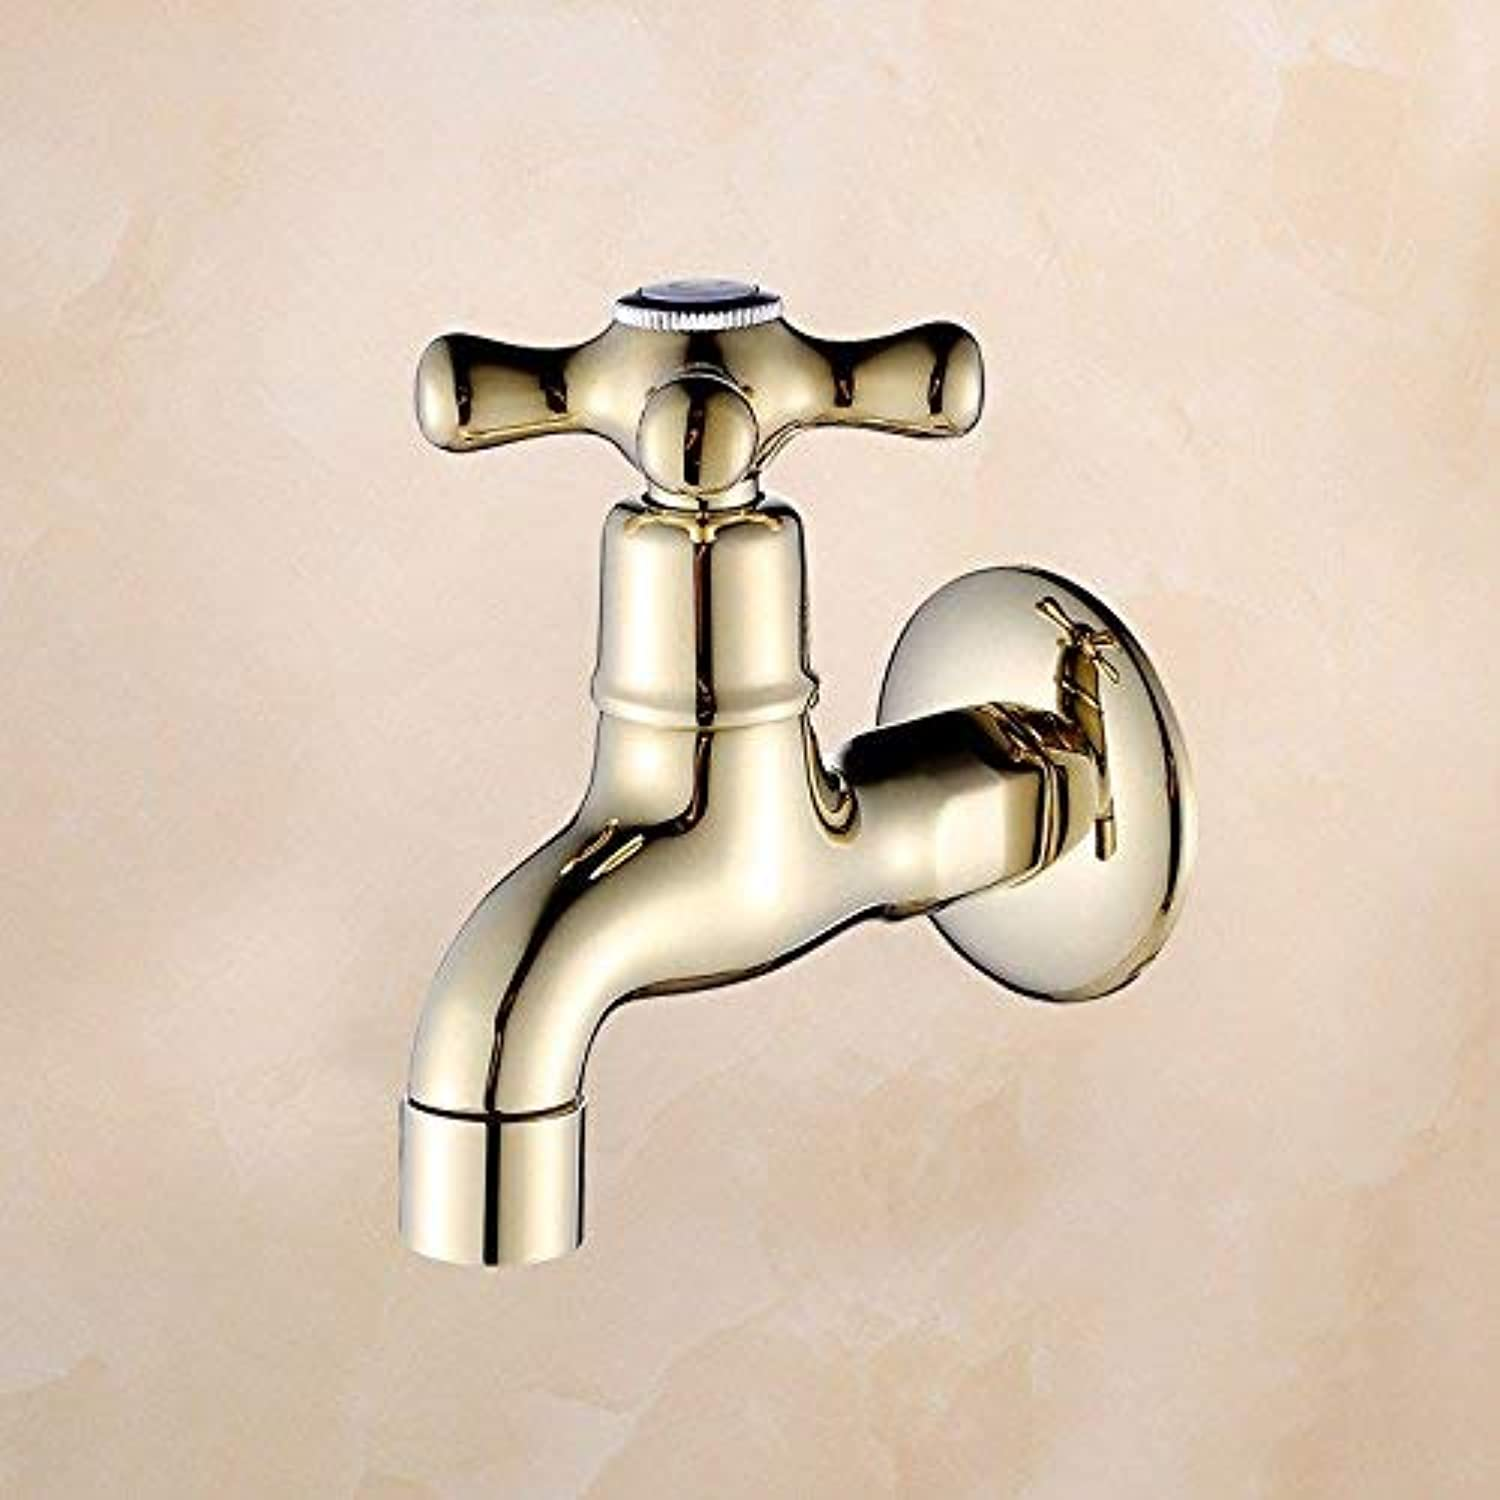 FORTR home Sink Mixer Tap Bathroom Kitchen Basin Tap Leakproof Save Water Antique Extended Sink Kitchen Full Copper Plated Water Nozzle Water Heating